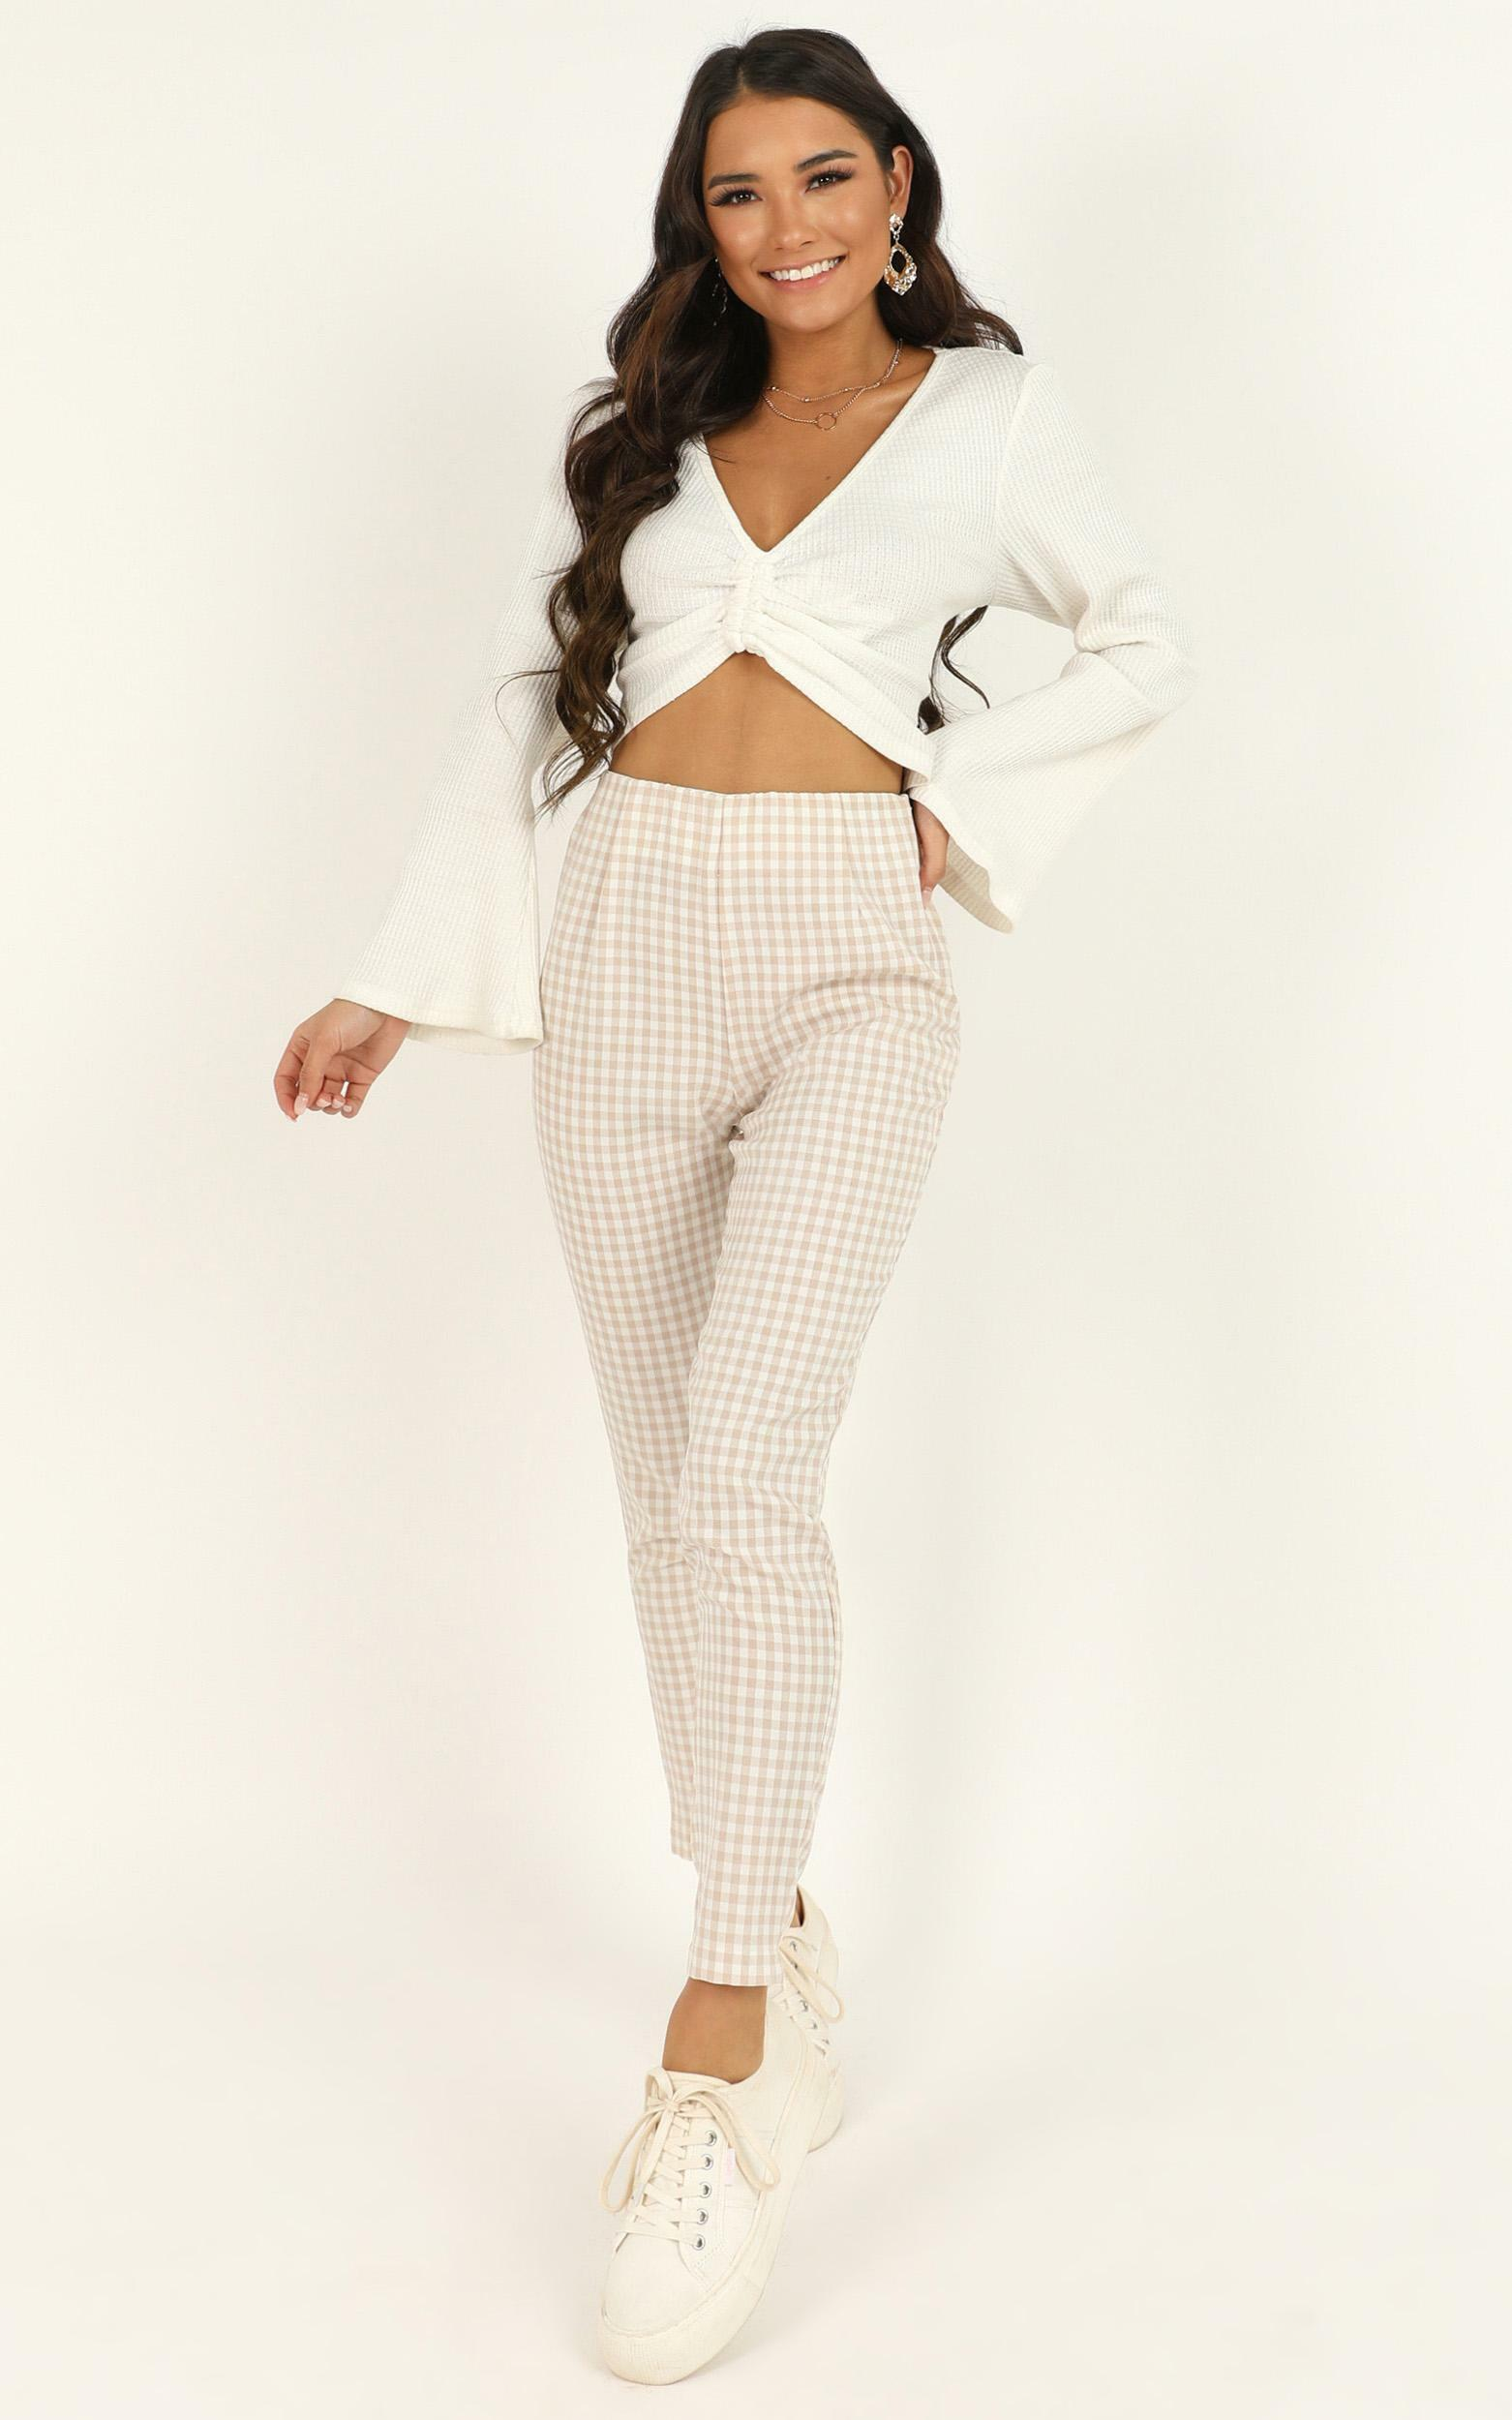 Business District Ankle Grazer Pant In cream check - 14 (XL), Cream, hi-res image number null